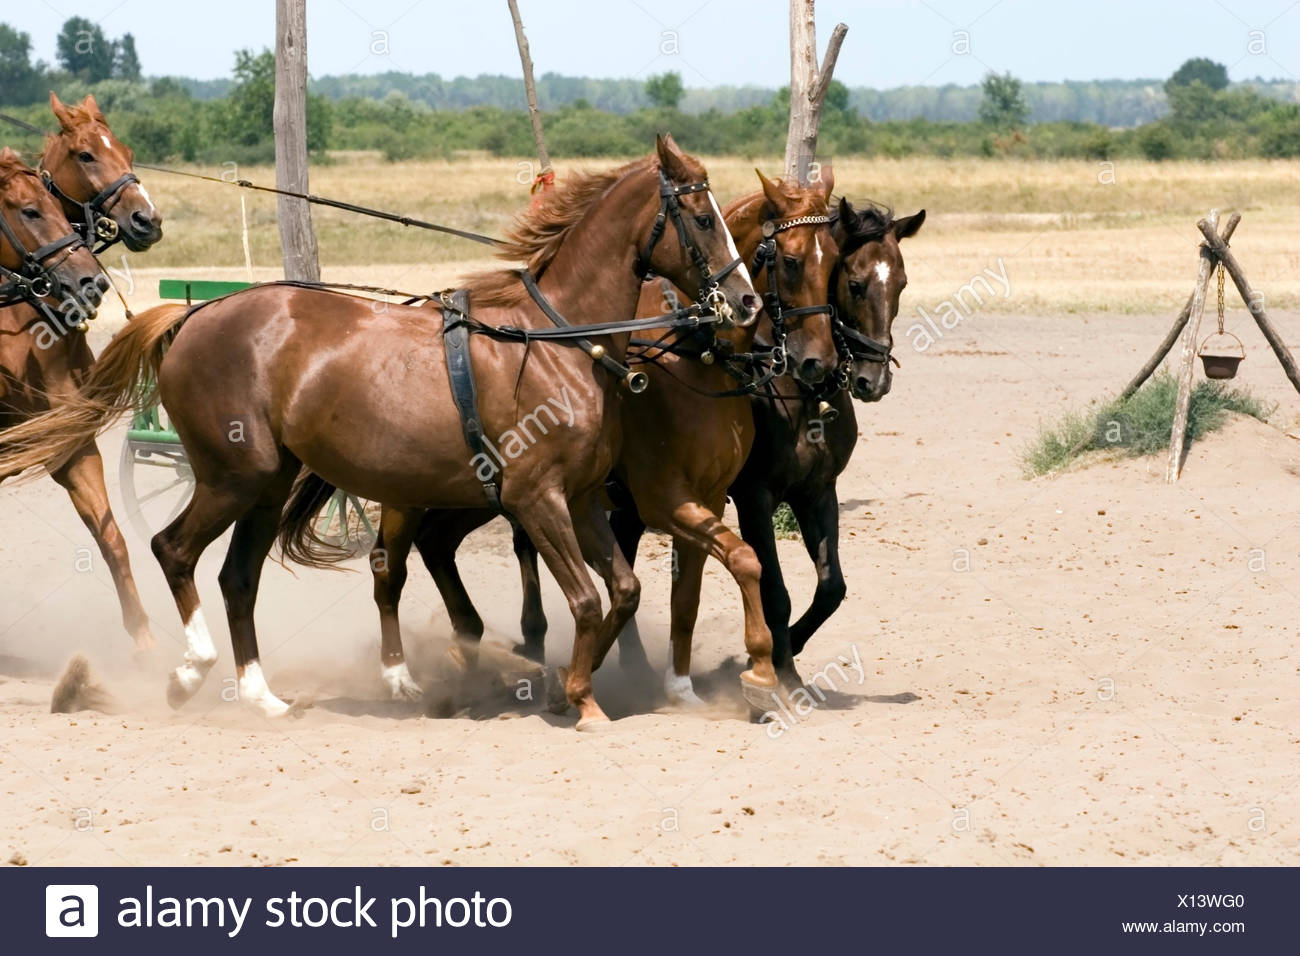 horse animal mammal homey domestic motion postponement moving movement sport - Stock Image